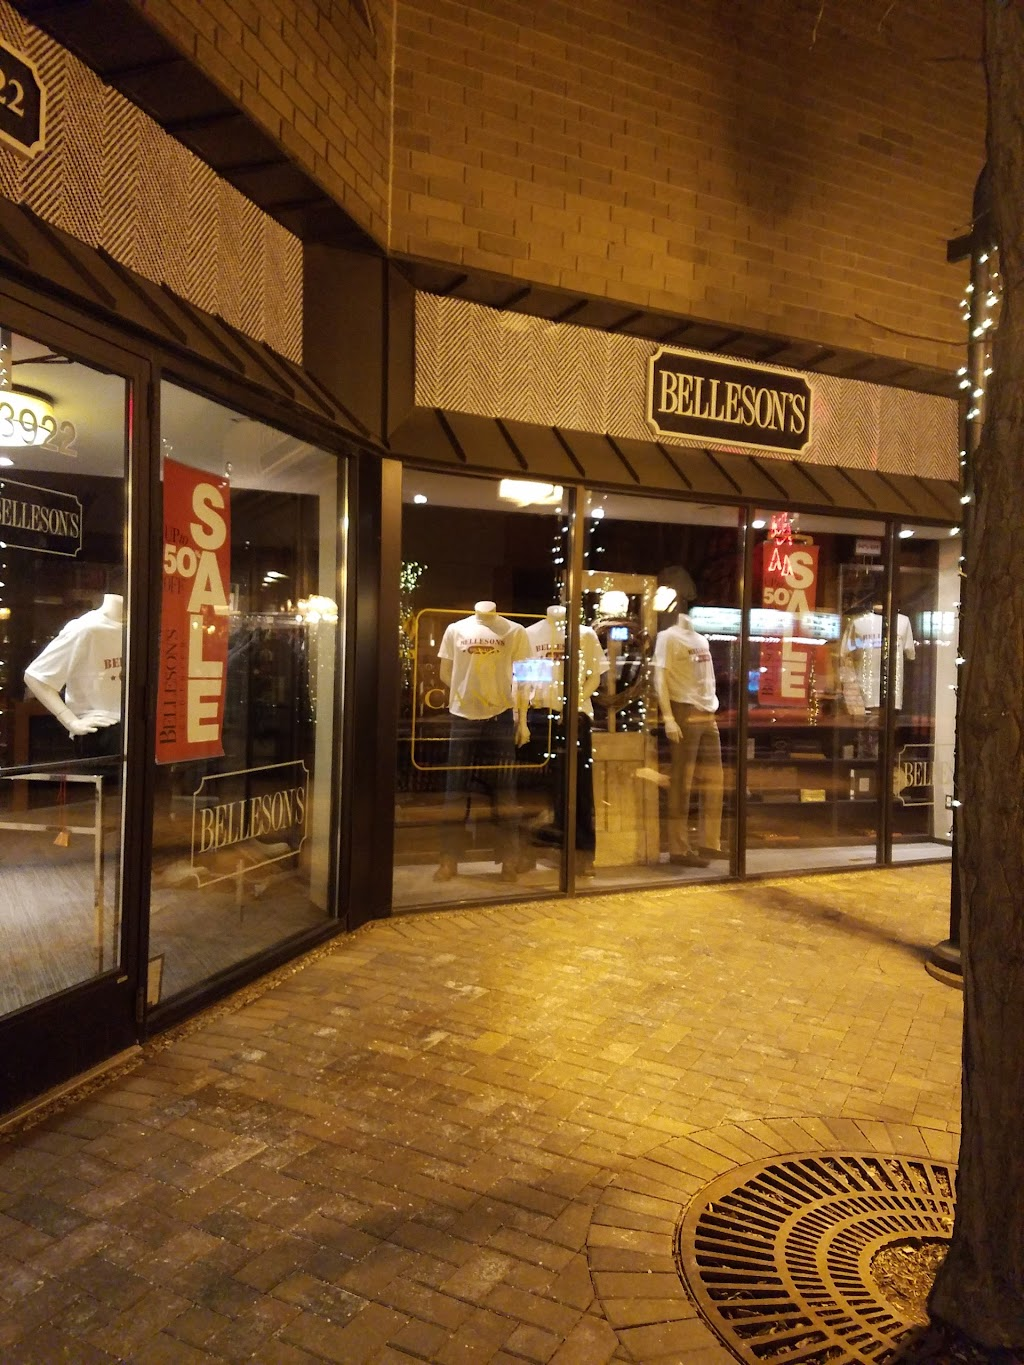 Bellesons for Men - clothing store    Photo 1 of 3   Address: 3922 W 50th St, Minneapolis, MN 55424, USA   Phone: (952) 927-4694